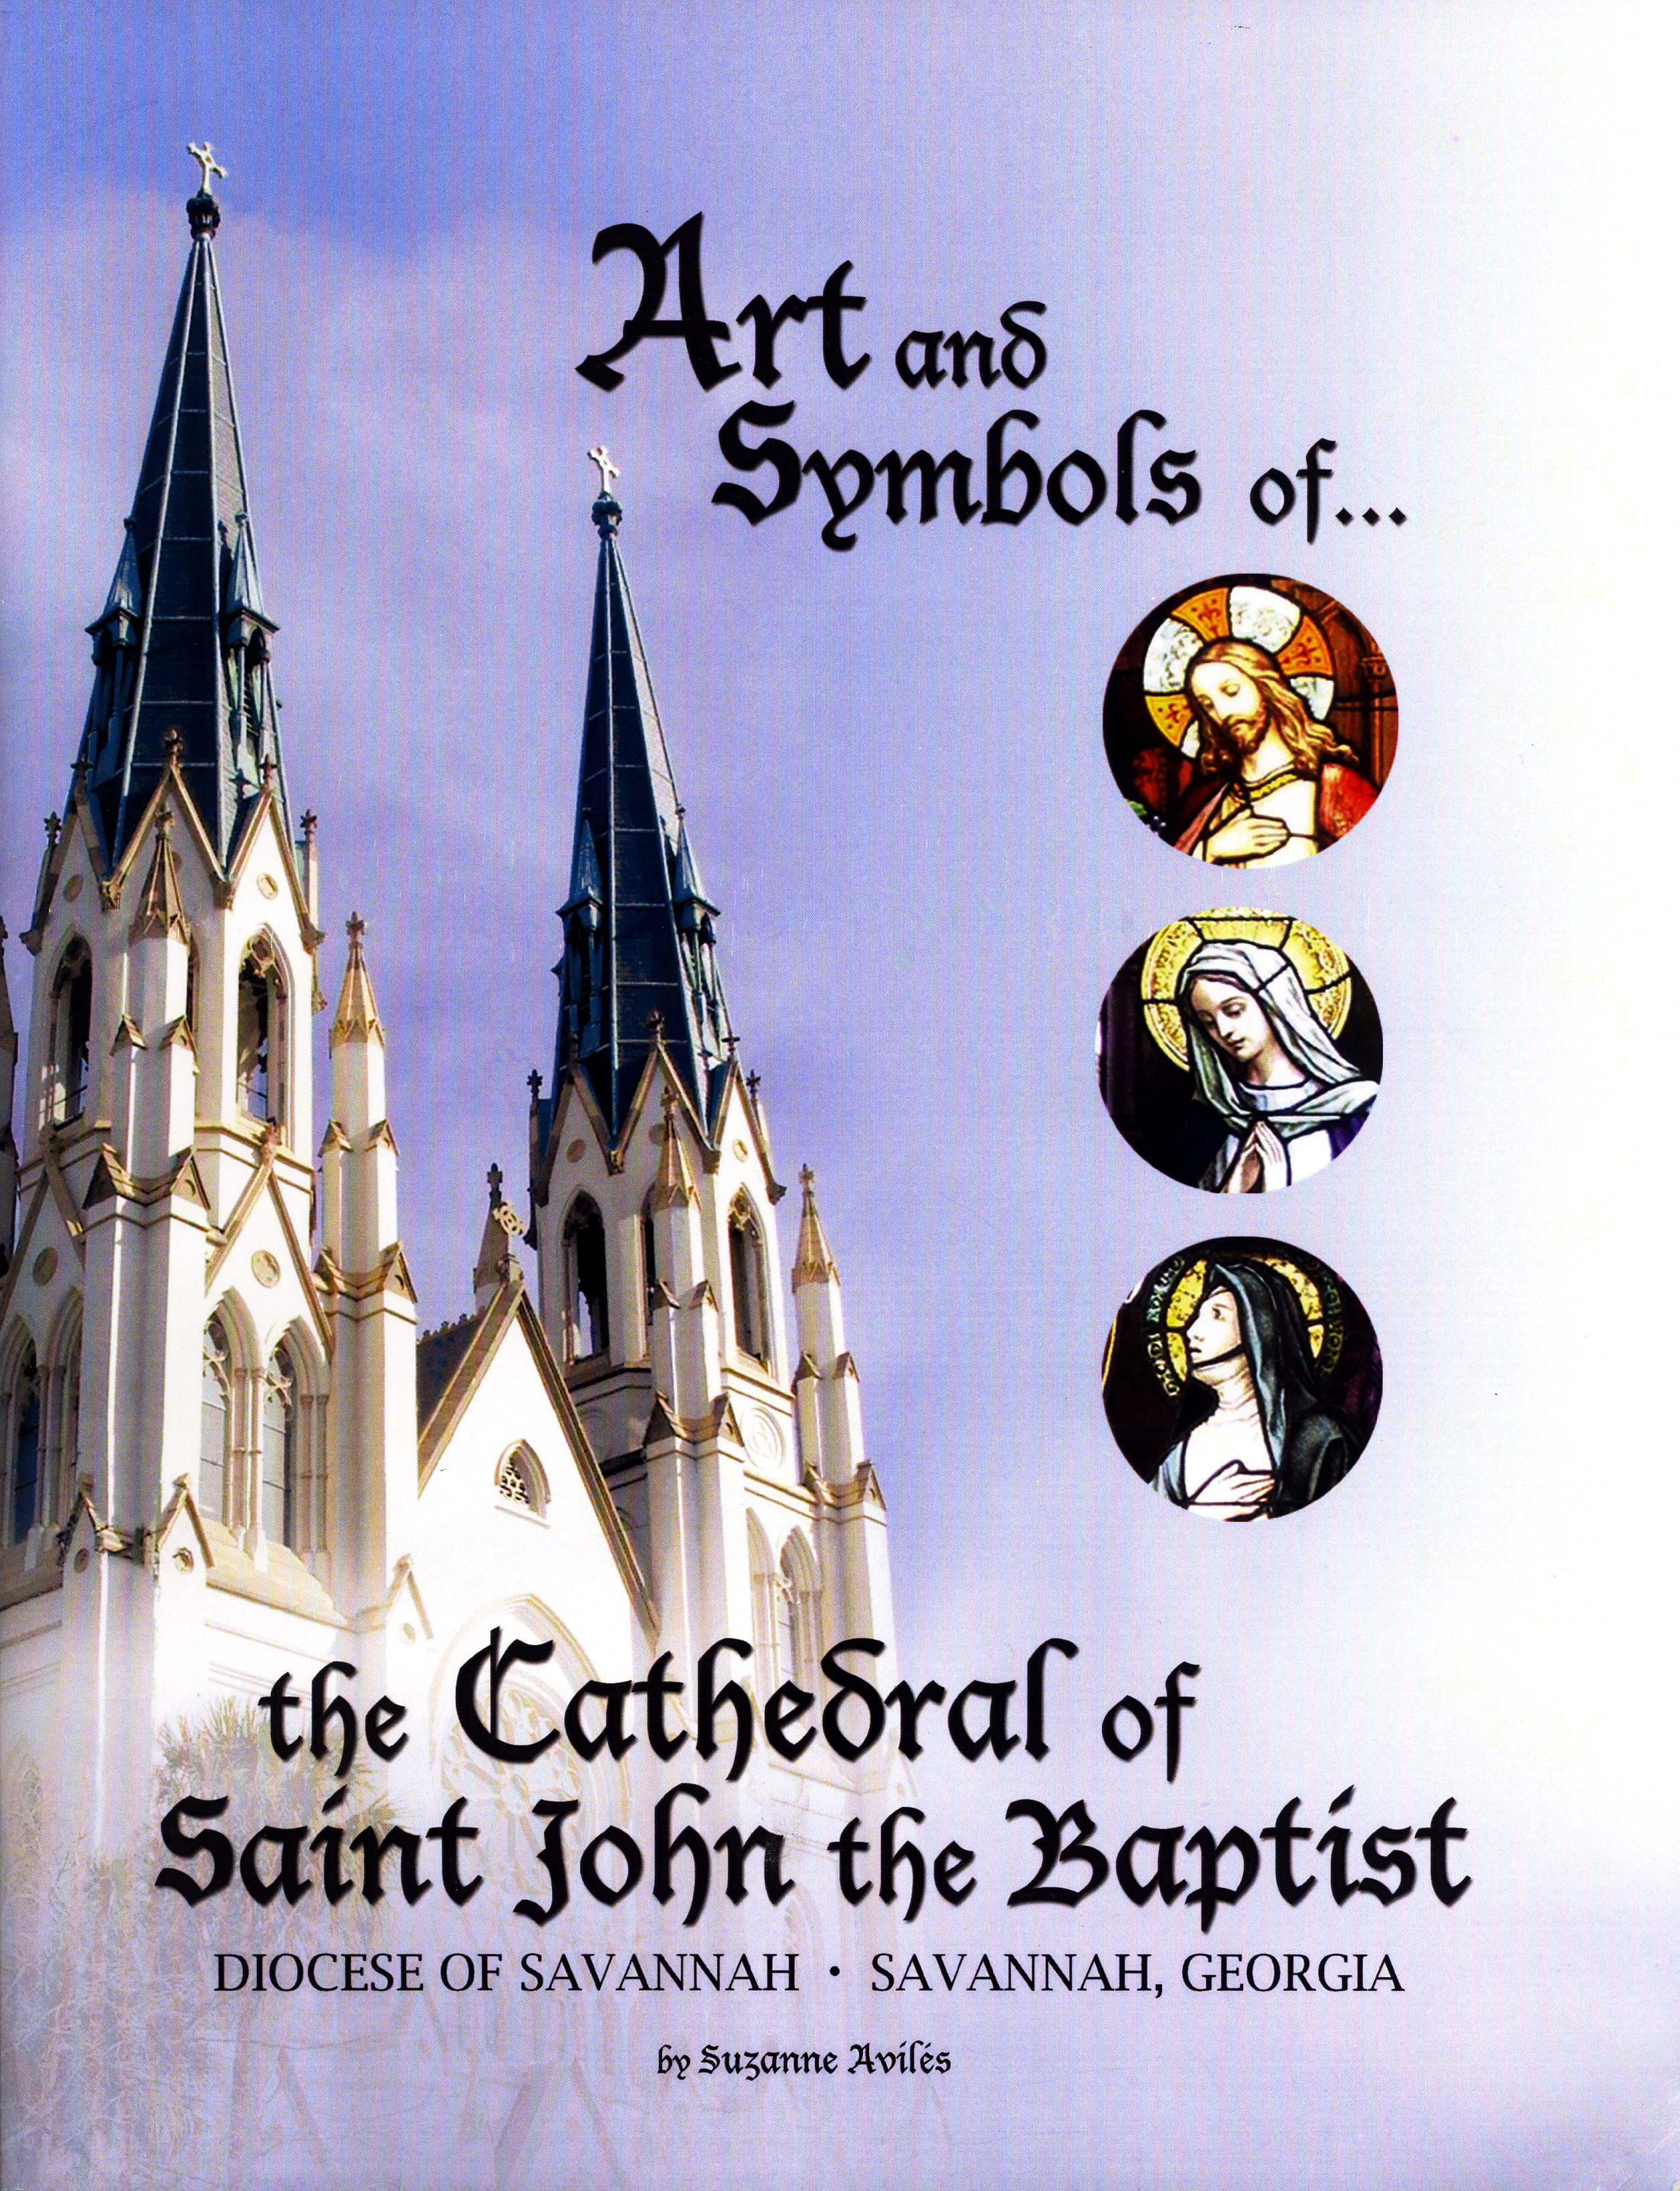 Art and symbols of the cathedral of saint john the baptist art and symbols of the cathedral of saint john the baptist cathedral of st john the baptist biocorpaavc Image collections